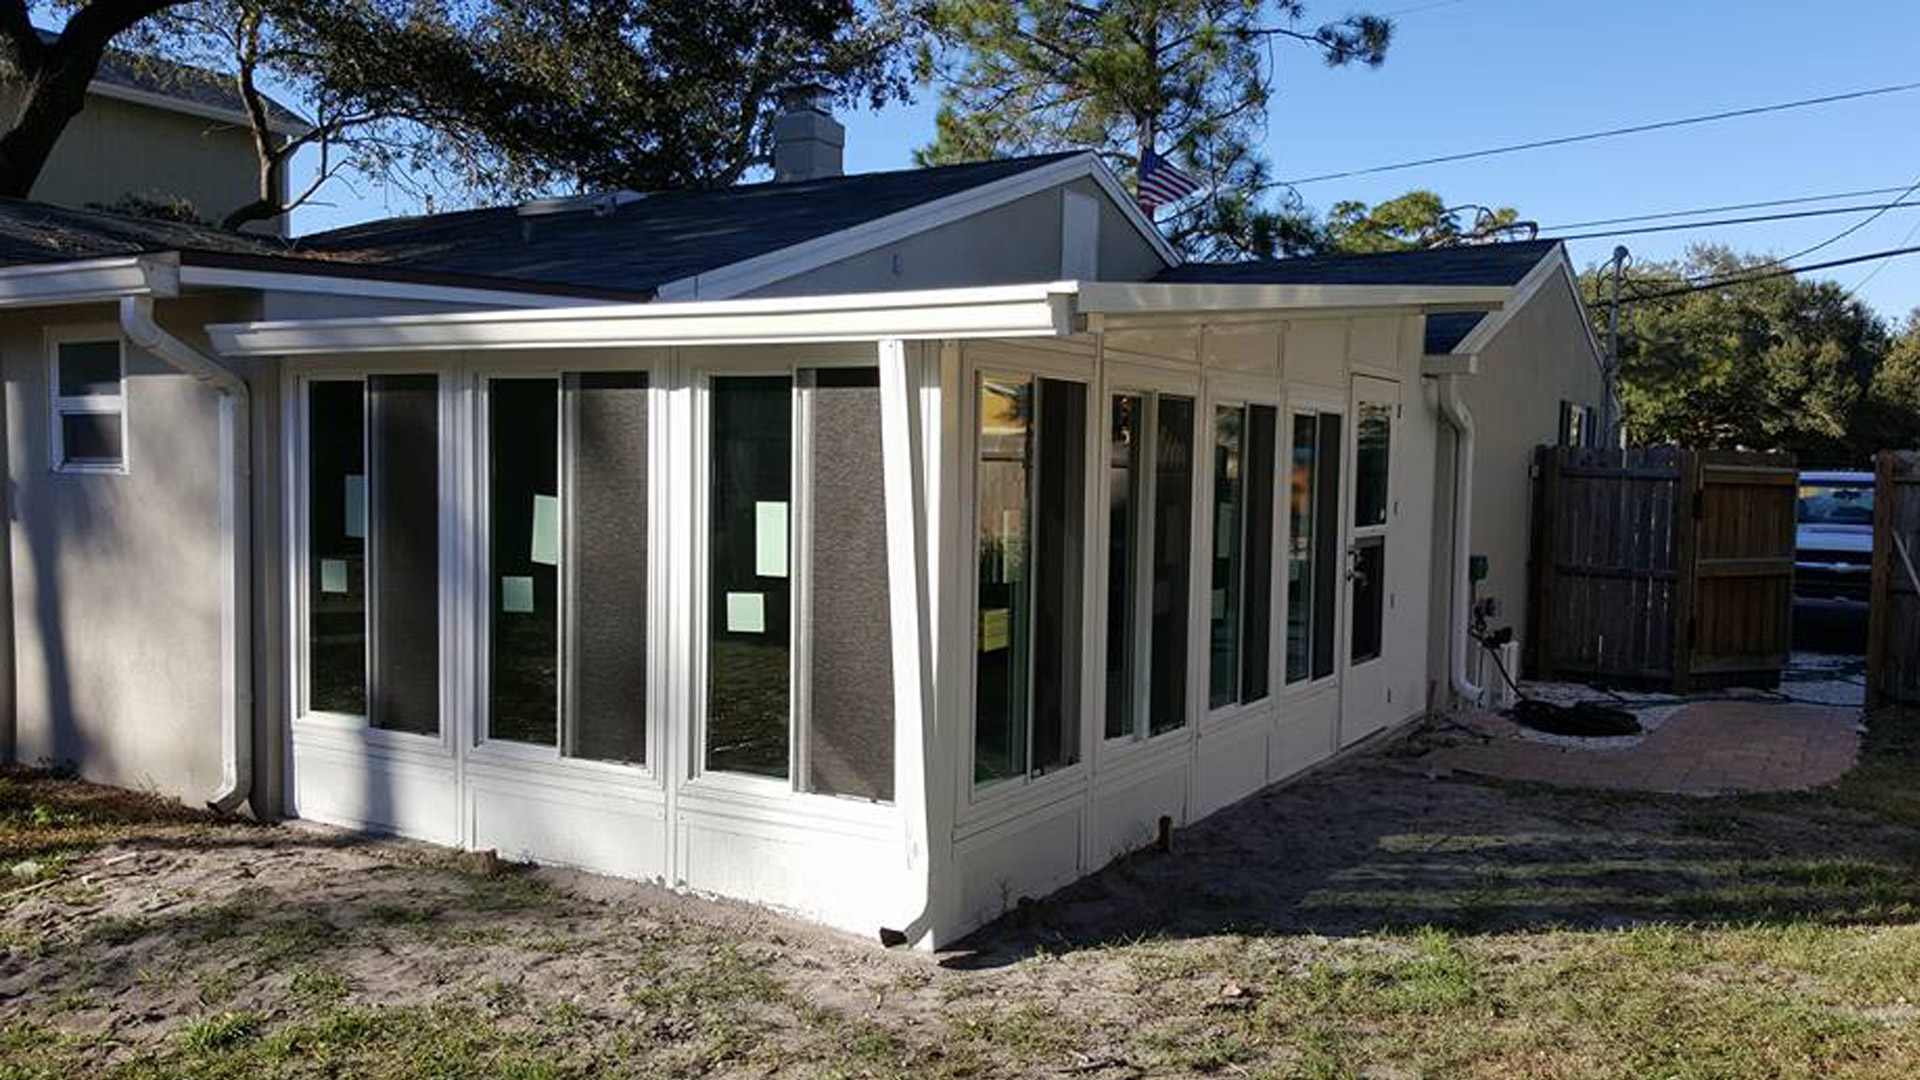 Sunroom custom built for a home in Lakeland, FL.